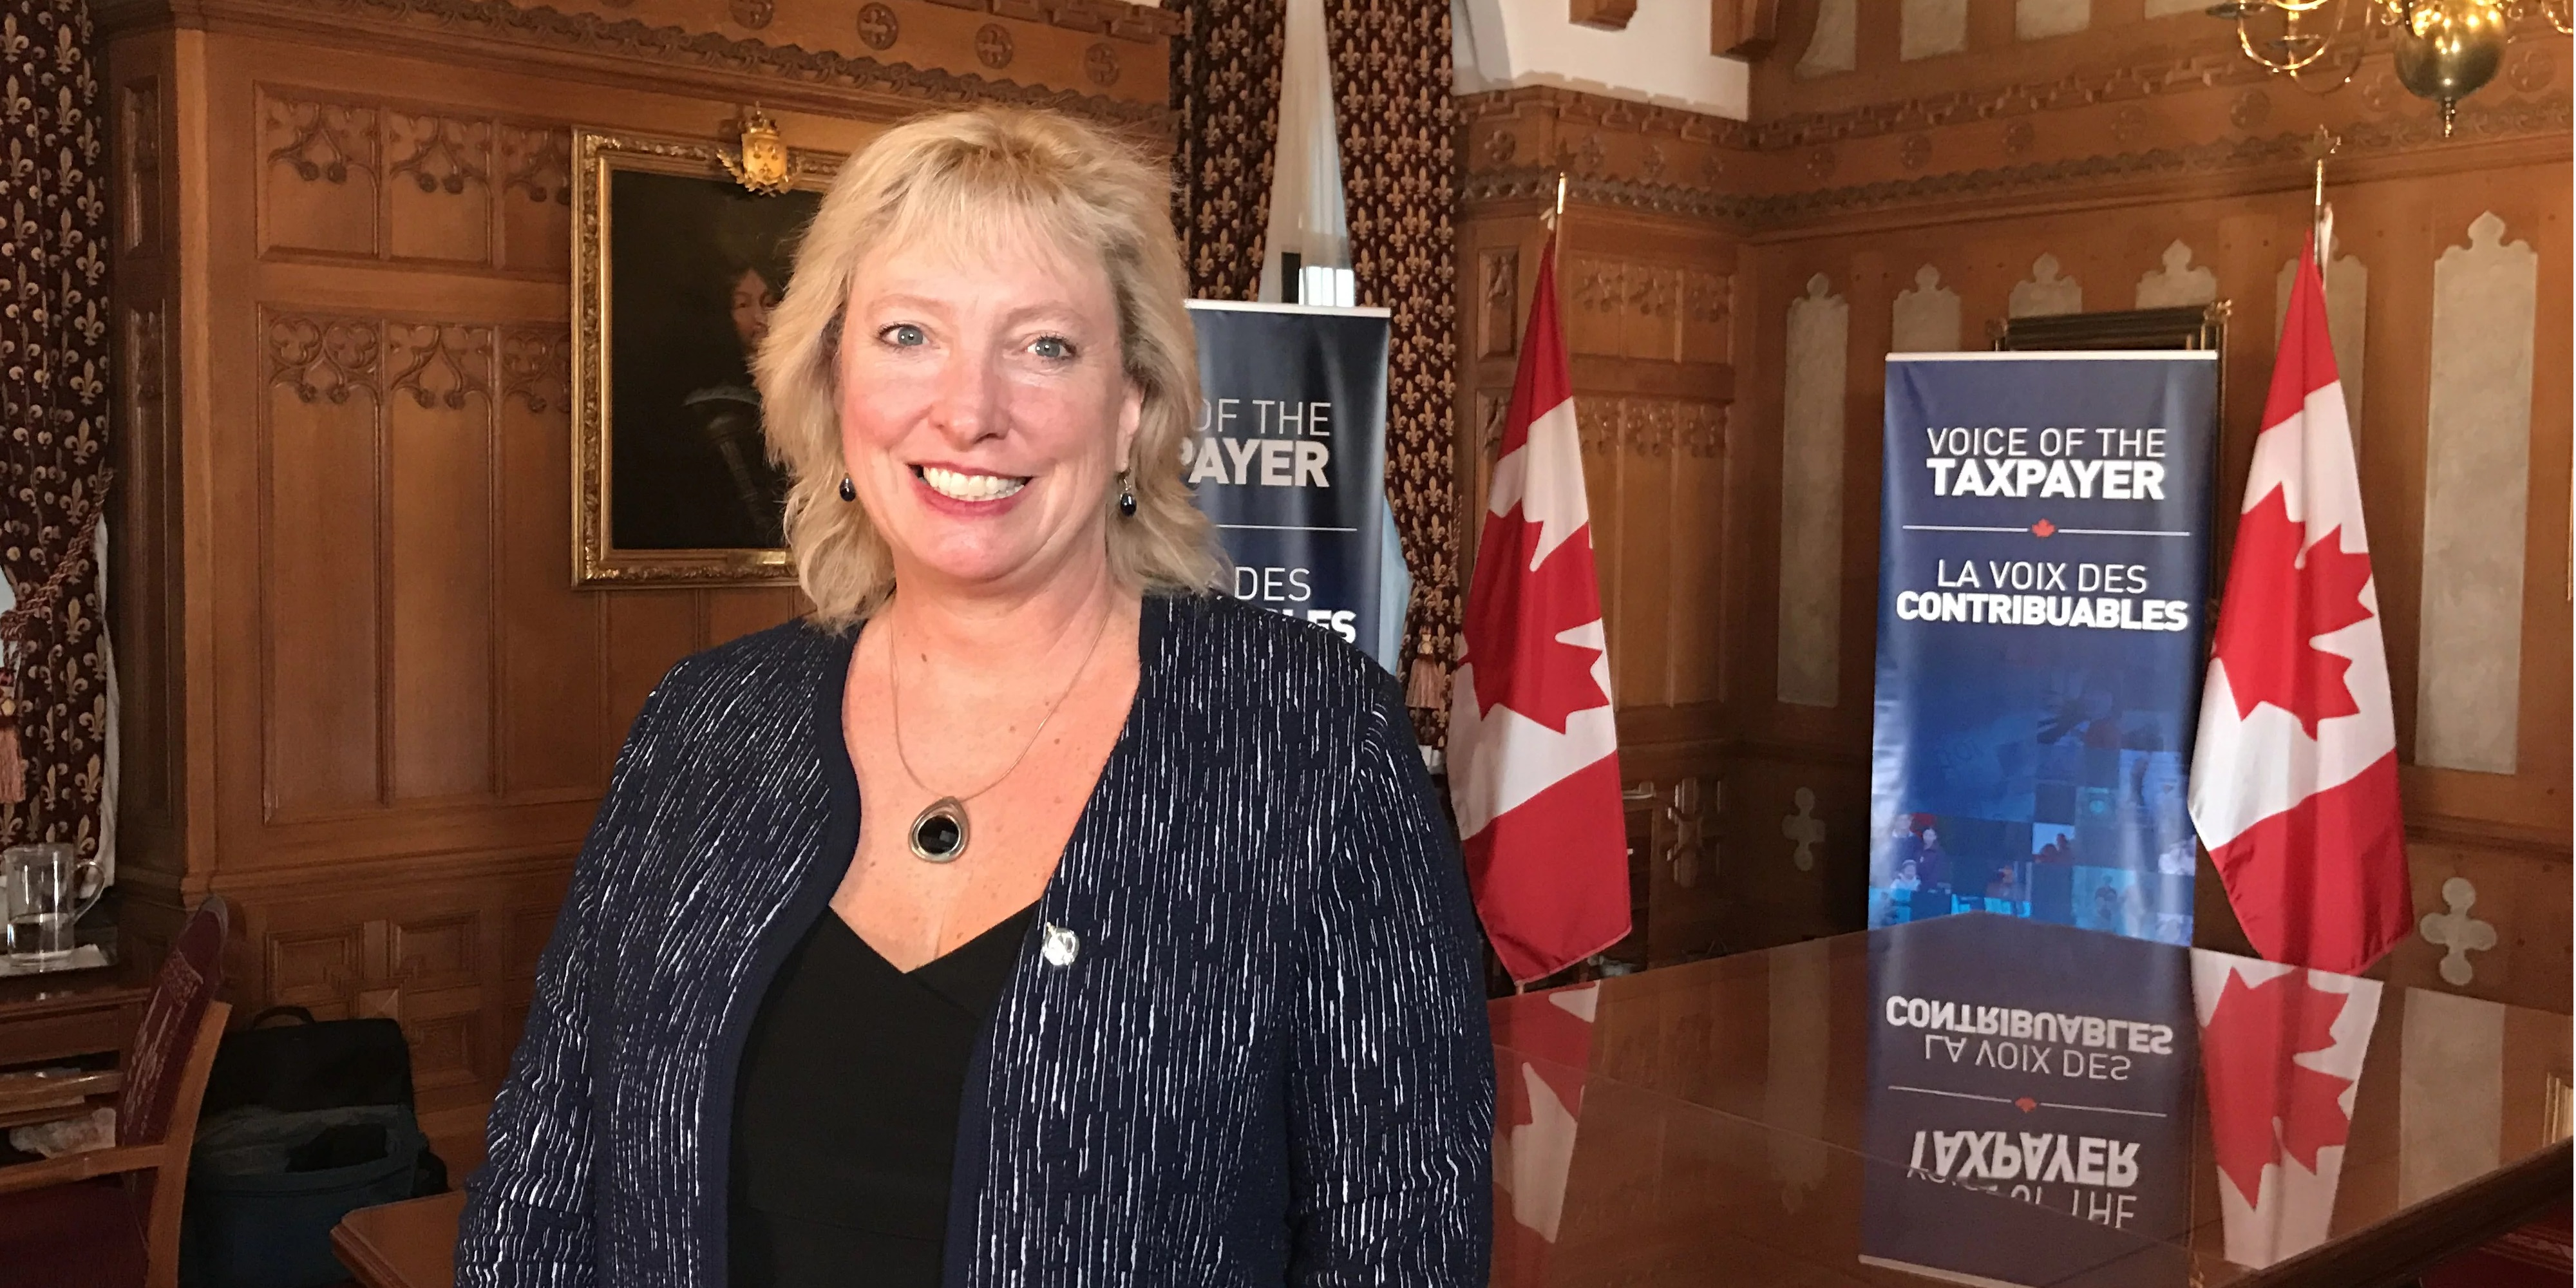 Marilyn Gladu approved to run for Conservative Party leadership